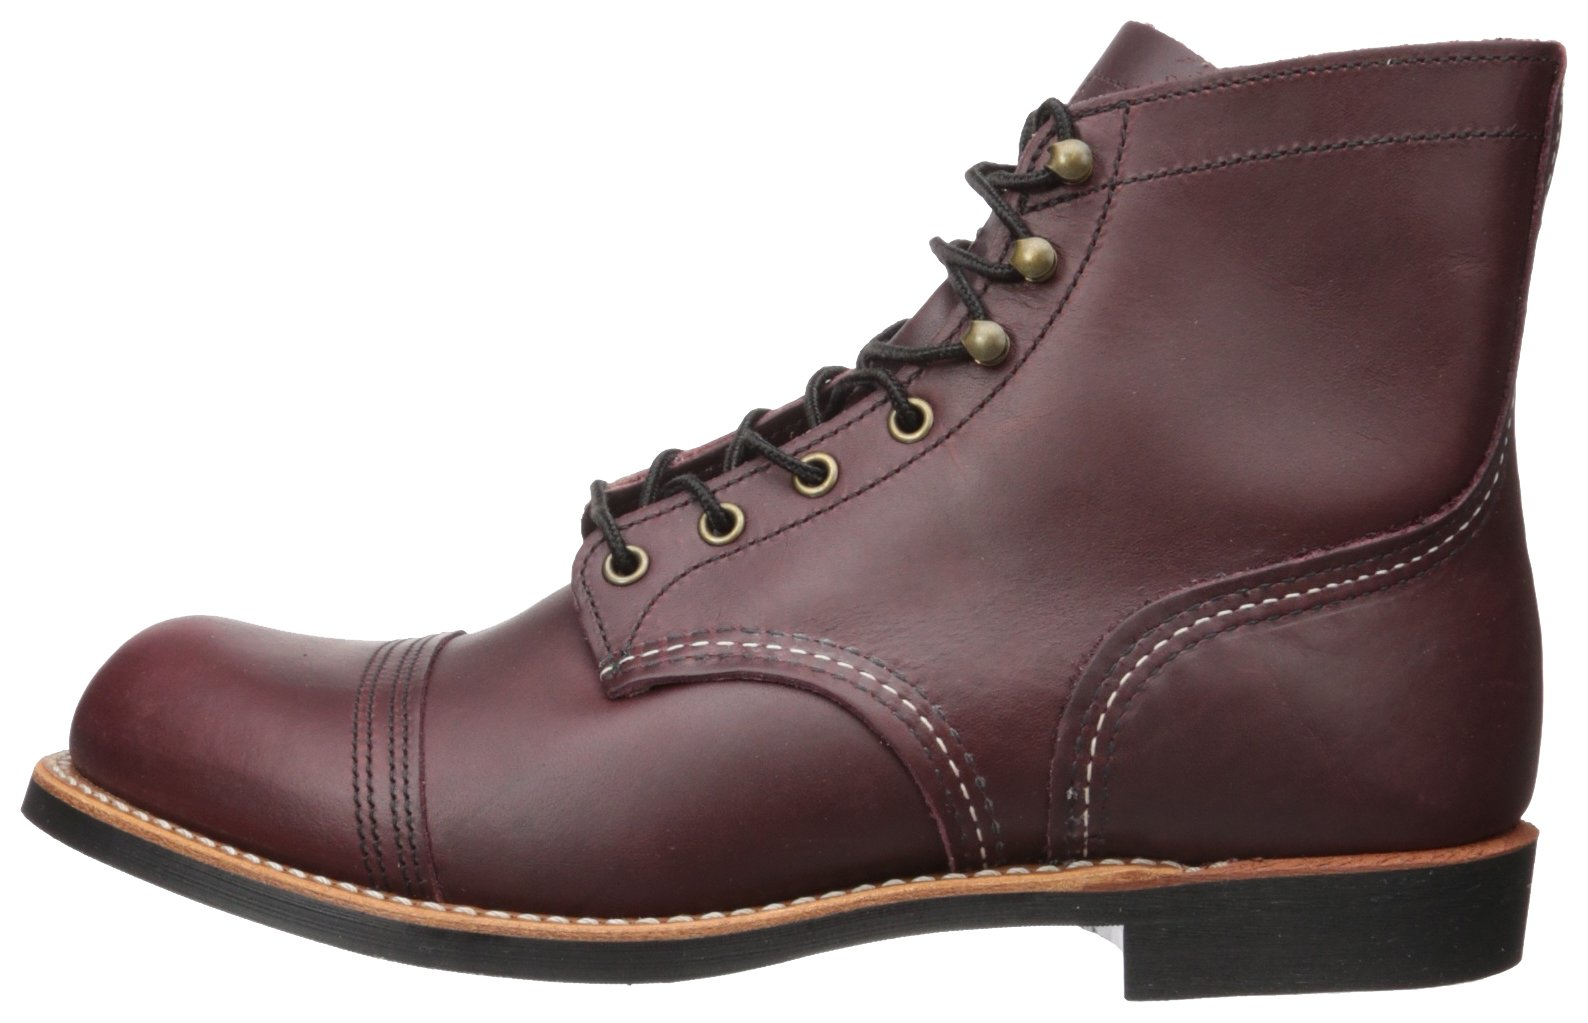 Red Wing Heritage Iron Ranger 6-Inch Boot, Oxblood Mesa, 8.5 D(M) US by Red Wing (Image #5)